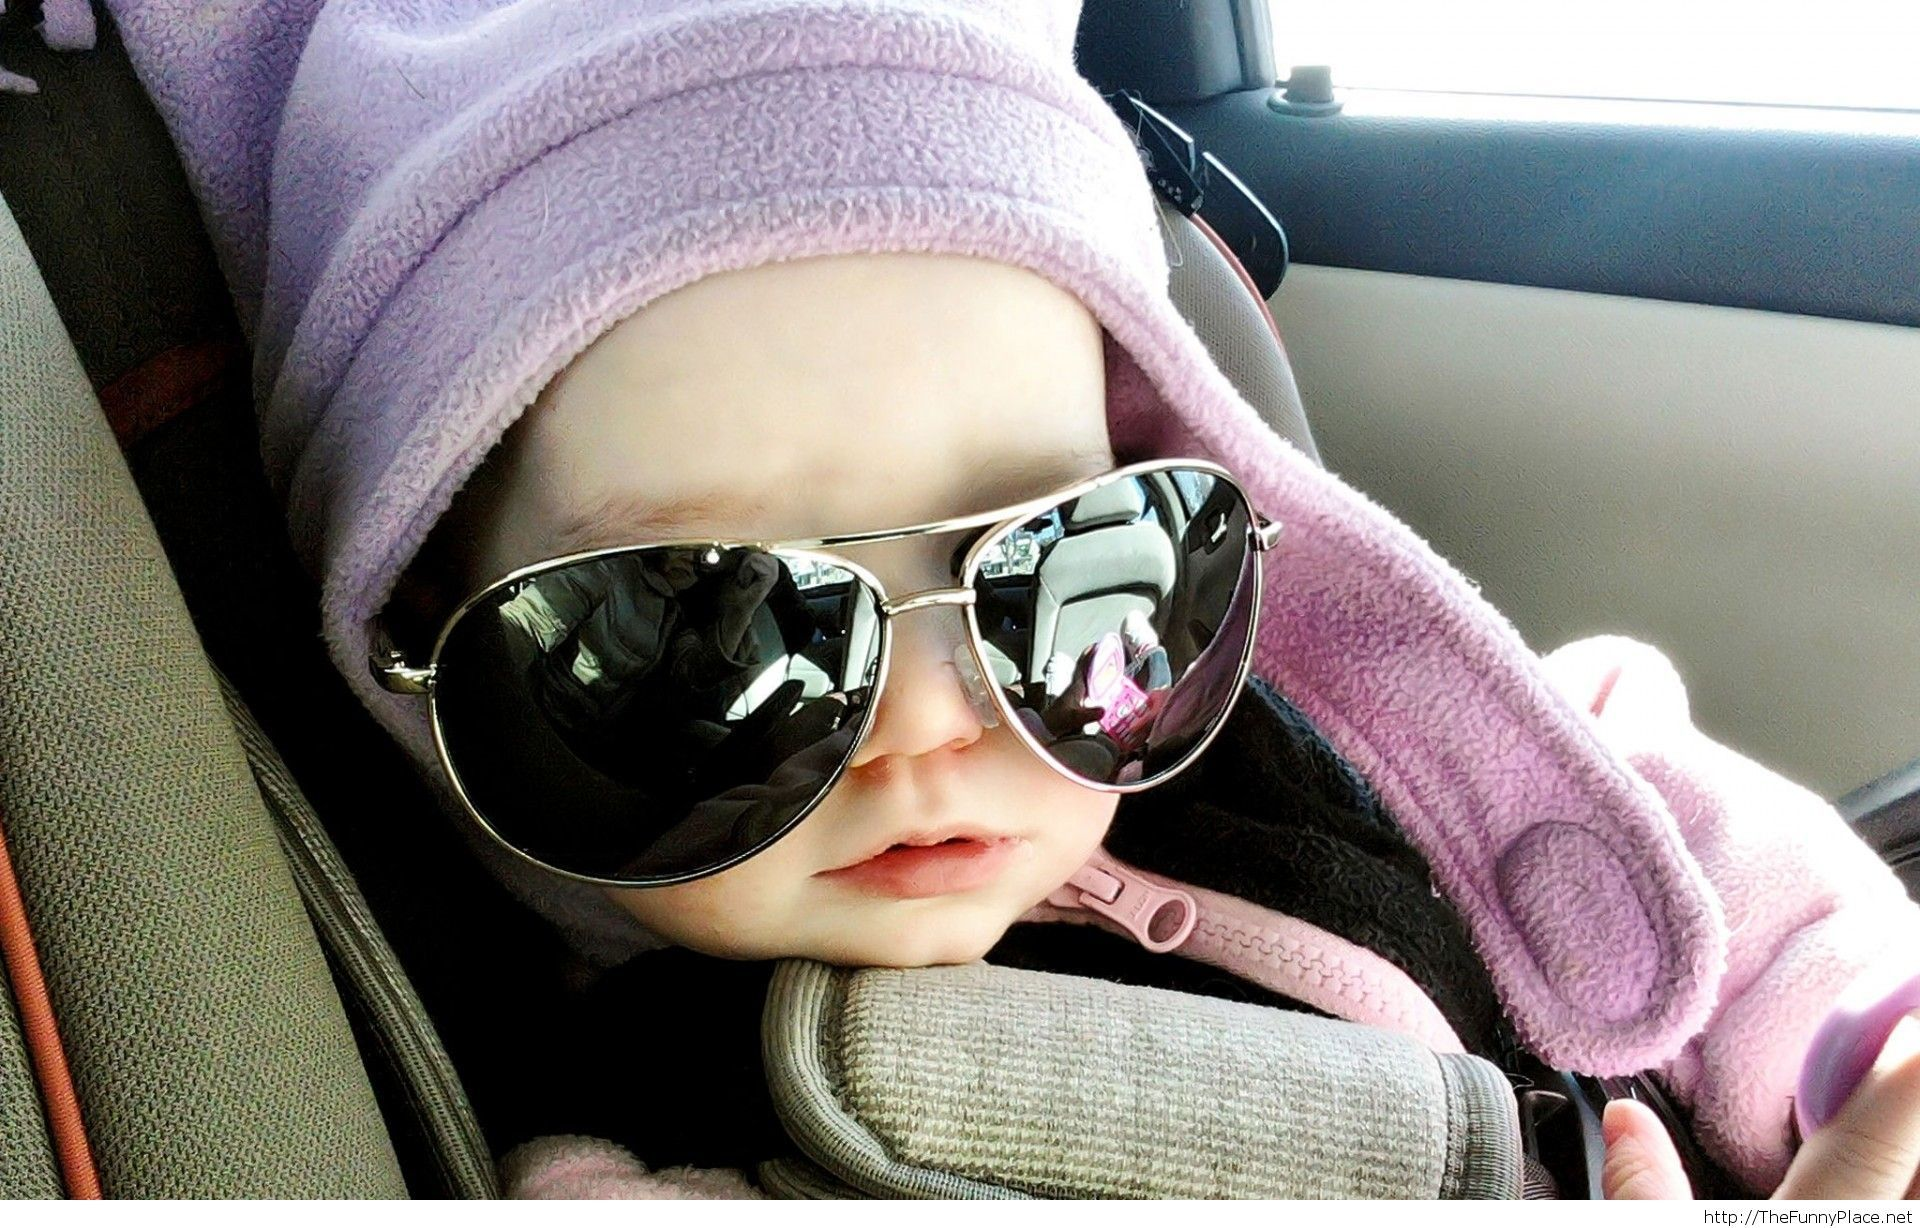 Awesome baby image